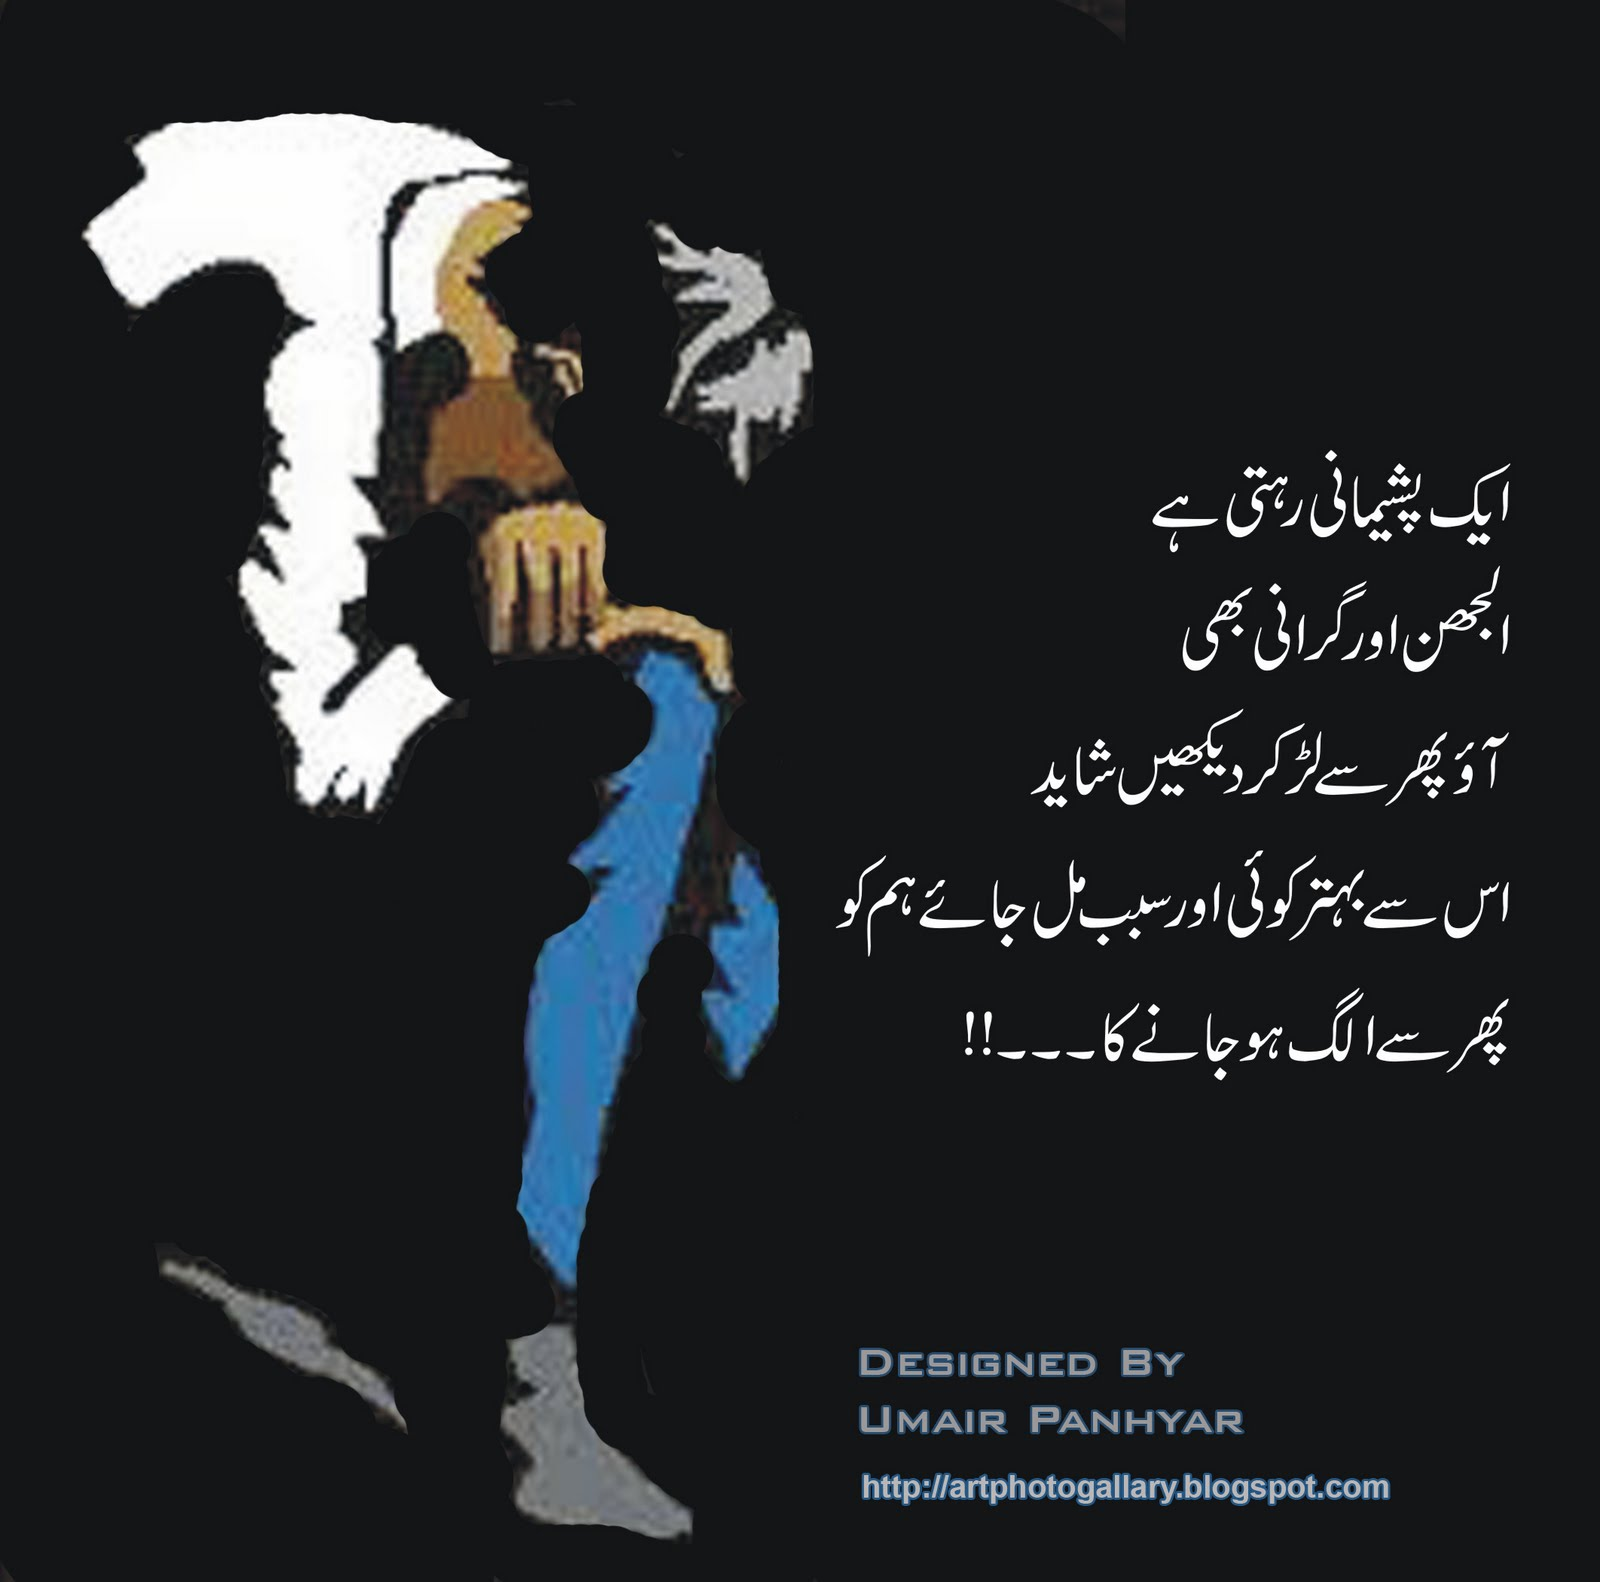 Man Alone Sad Quotes: Alone Sad Man With Urdu Nazam